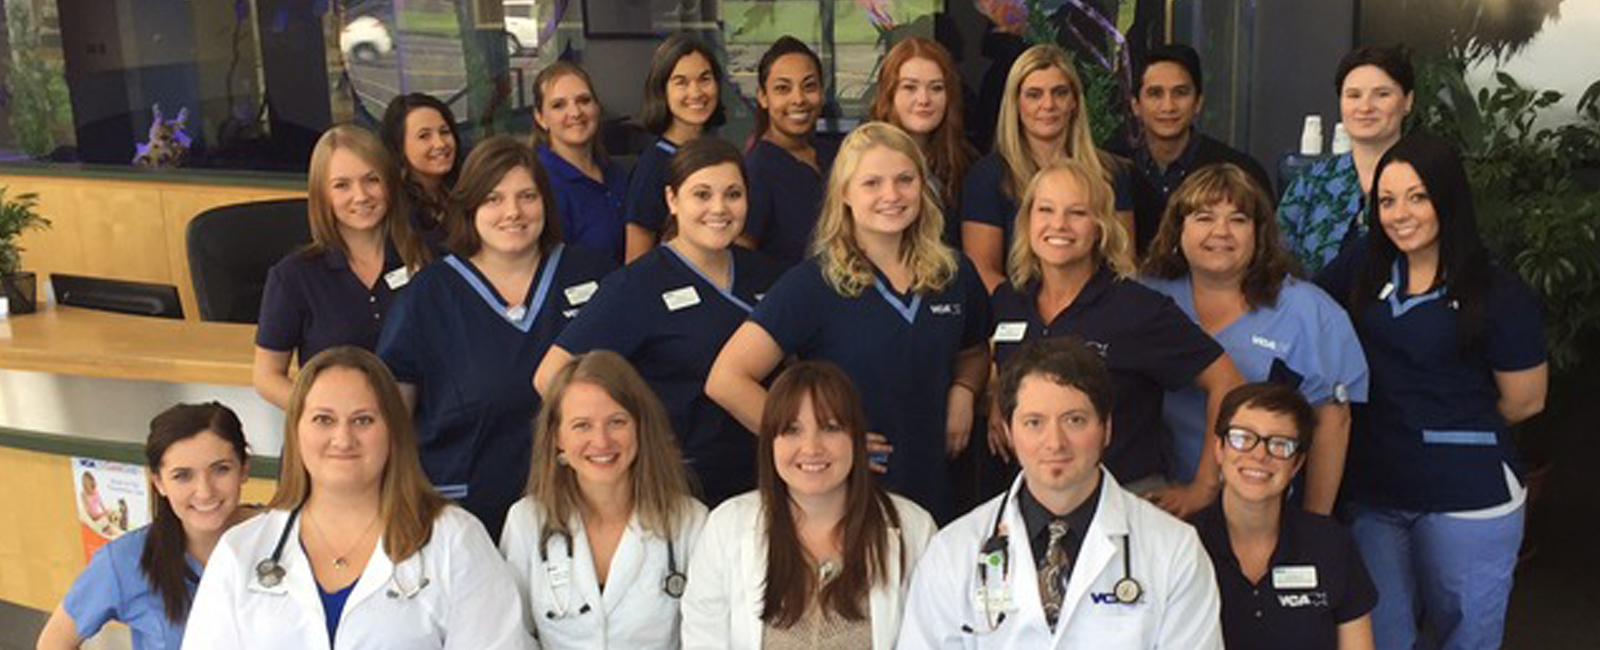 Homepage Team Picture of VCA Westmoreland Animal Hospital